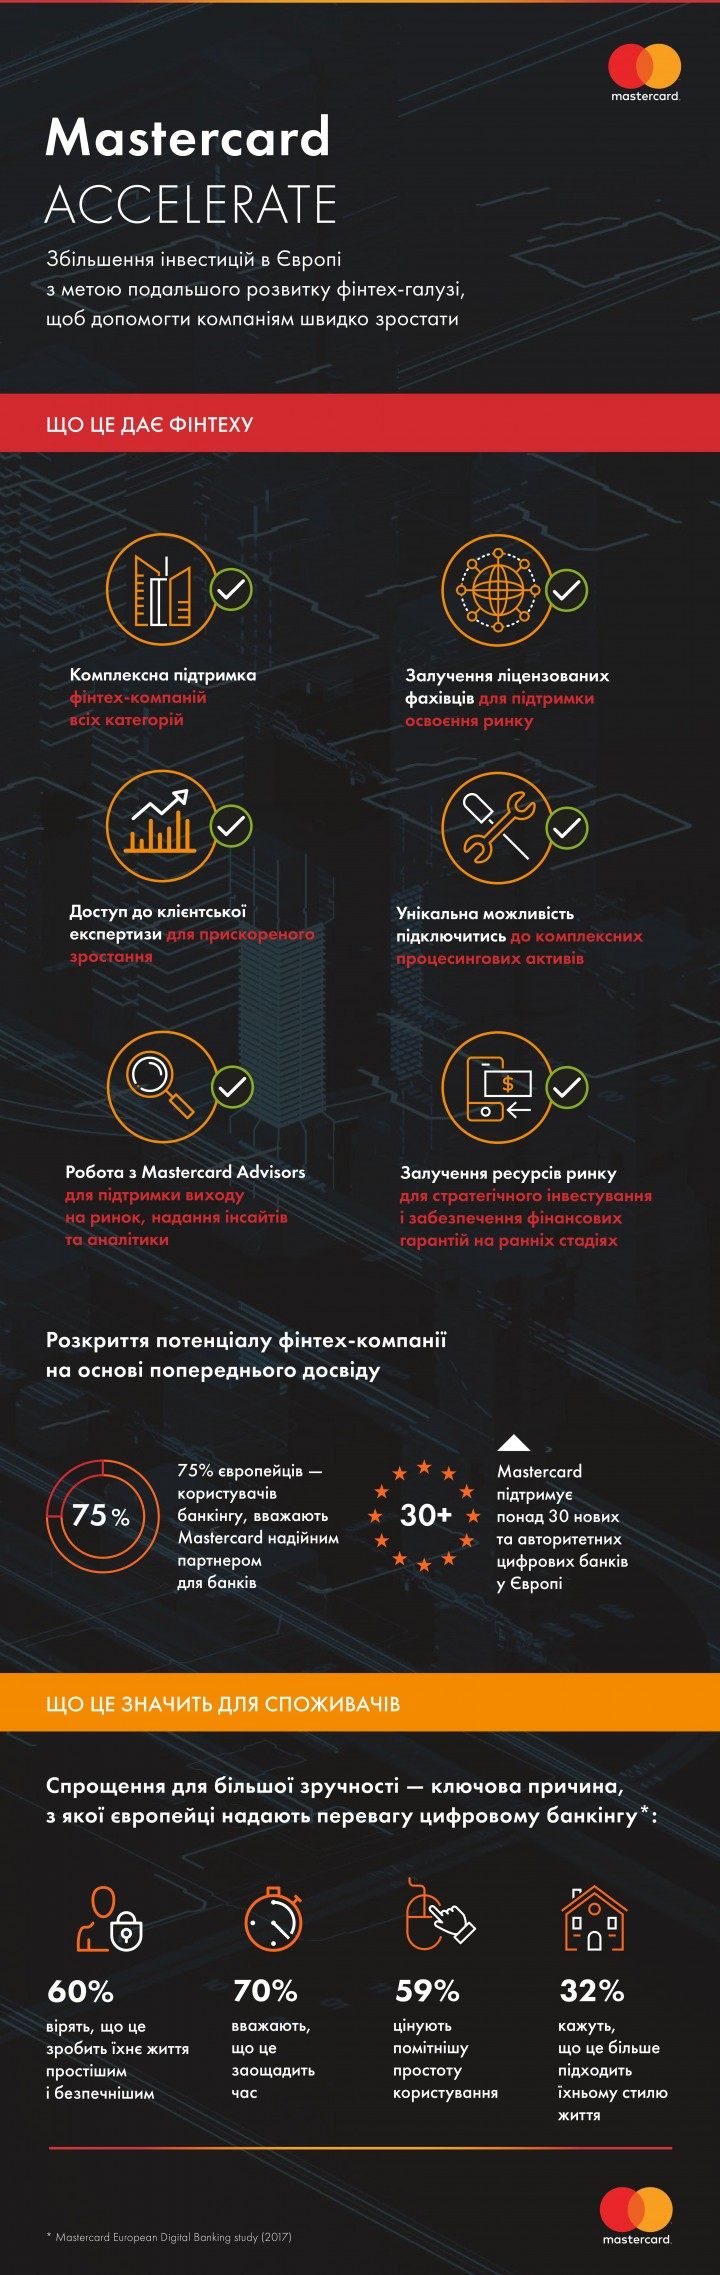 Mastercard_Accelerate_Infographic_ua-converted